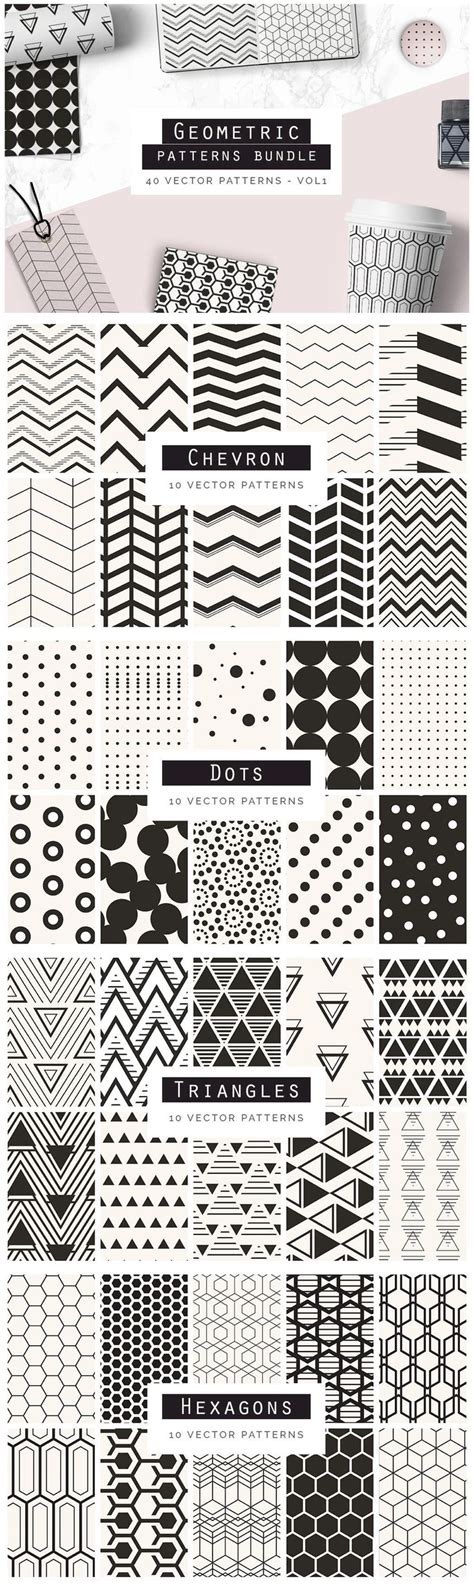 strategy pattern c dot net tricks 35 best dbm spaces images on pinterest perspective